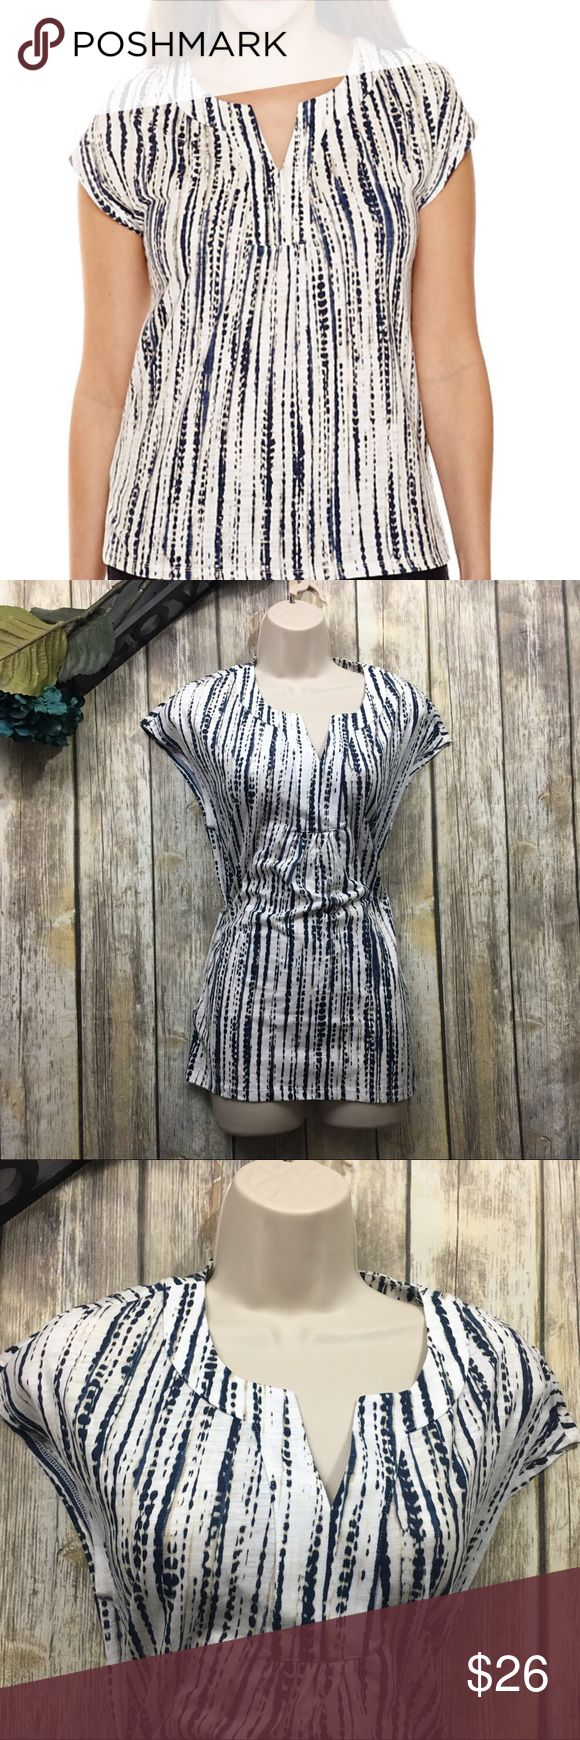 Liz Claiborne Linen Life Style Top Dark blue dune multi color short sleeve top. Size MT. New with tags. 26 inches long in the front and 28 inches in the back. 20 inch bust line without being stretched. Cotton polyester blend material. Liz Claiborne Tops Blouses